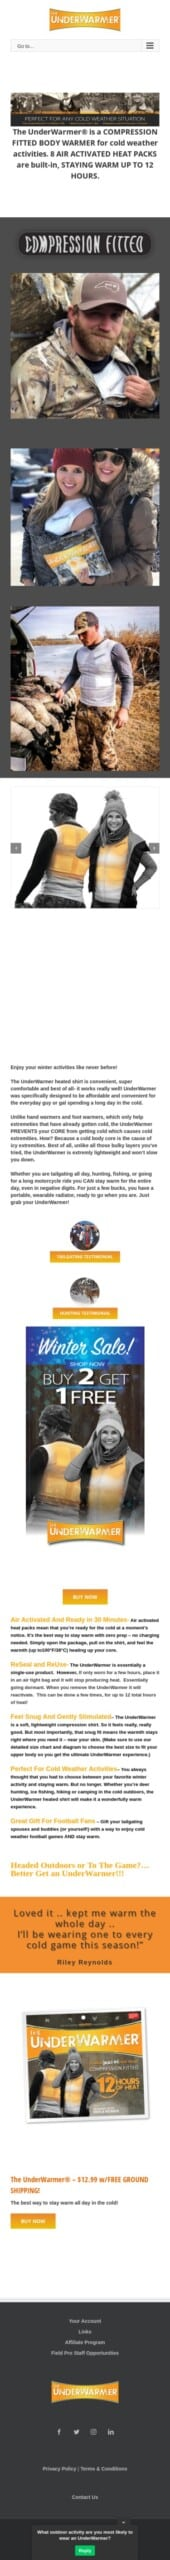 UnderWarmer LLC Coupon